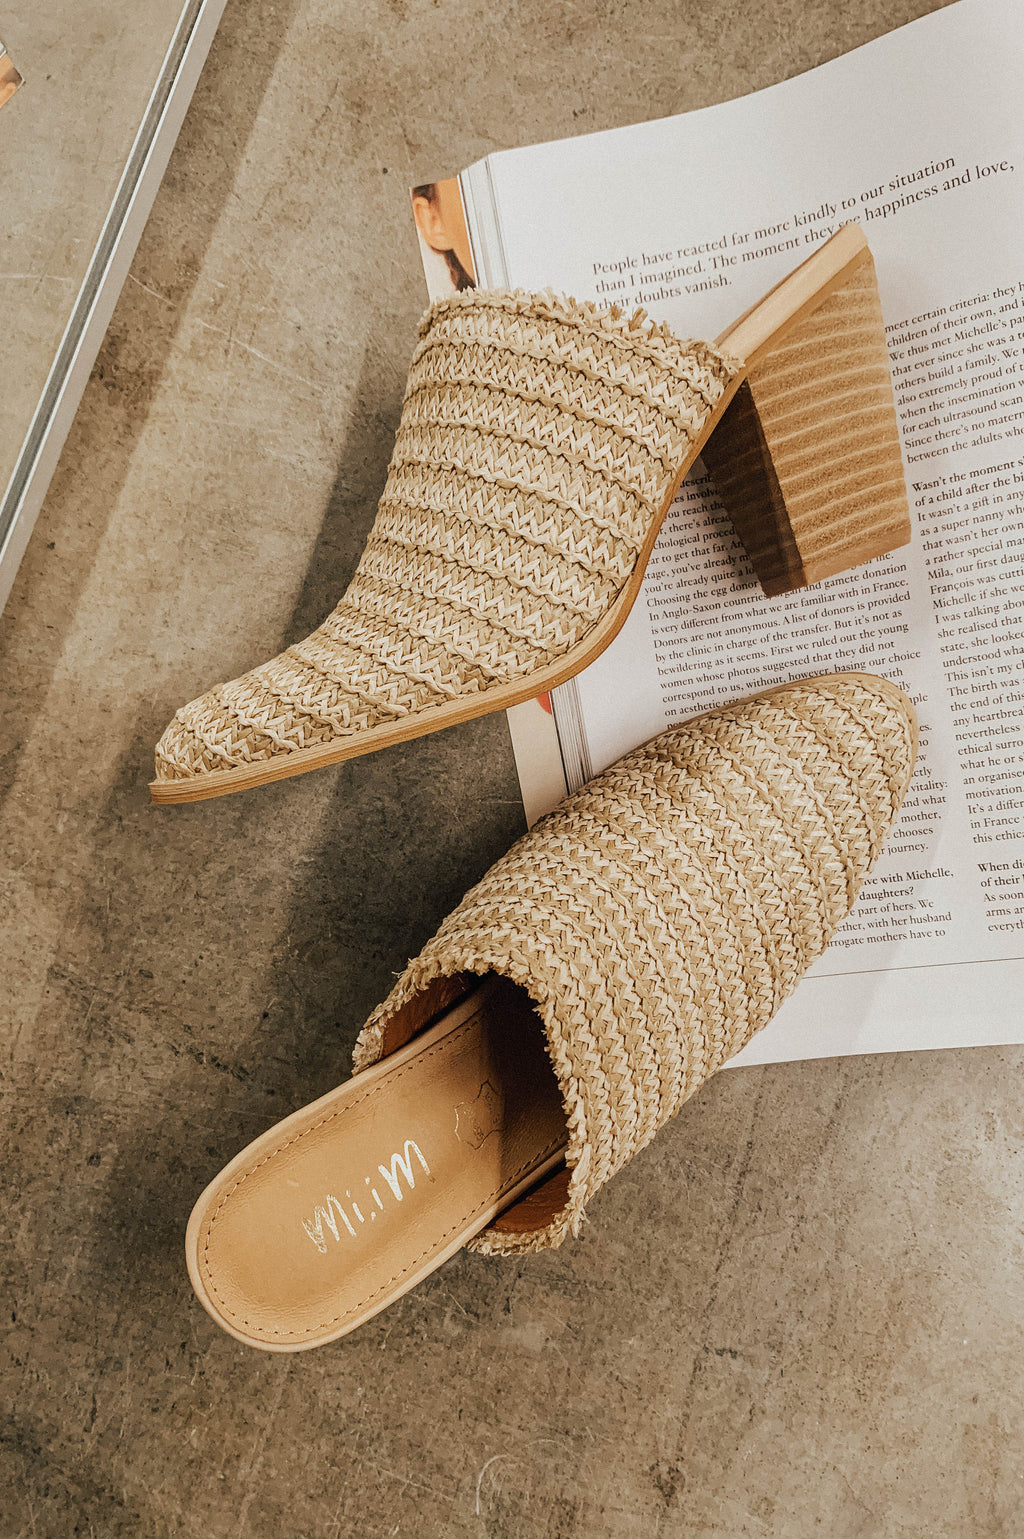 https://cdn.shopify.com/s/files/1/0020/3702/2765/files/wicker-tan-mules.MP4?v=1594324900